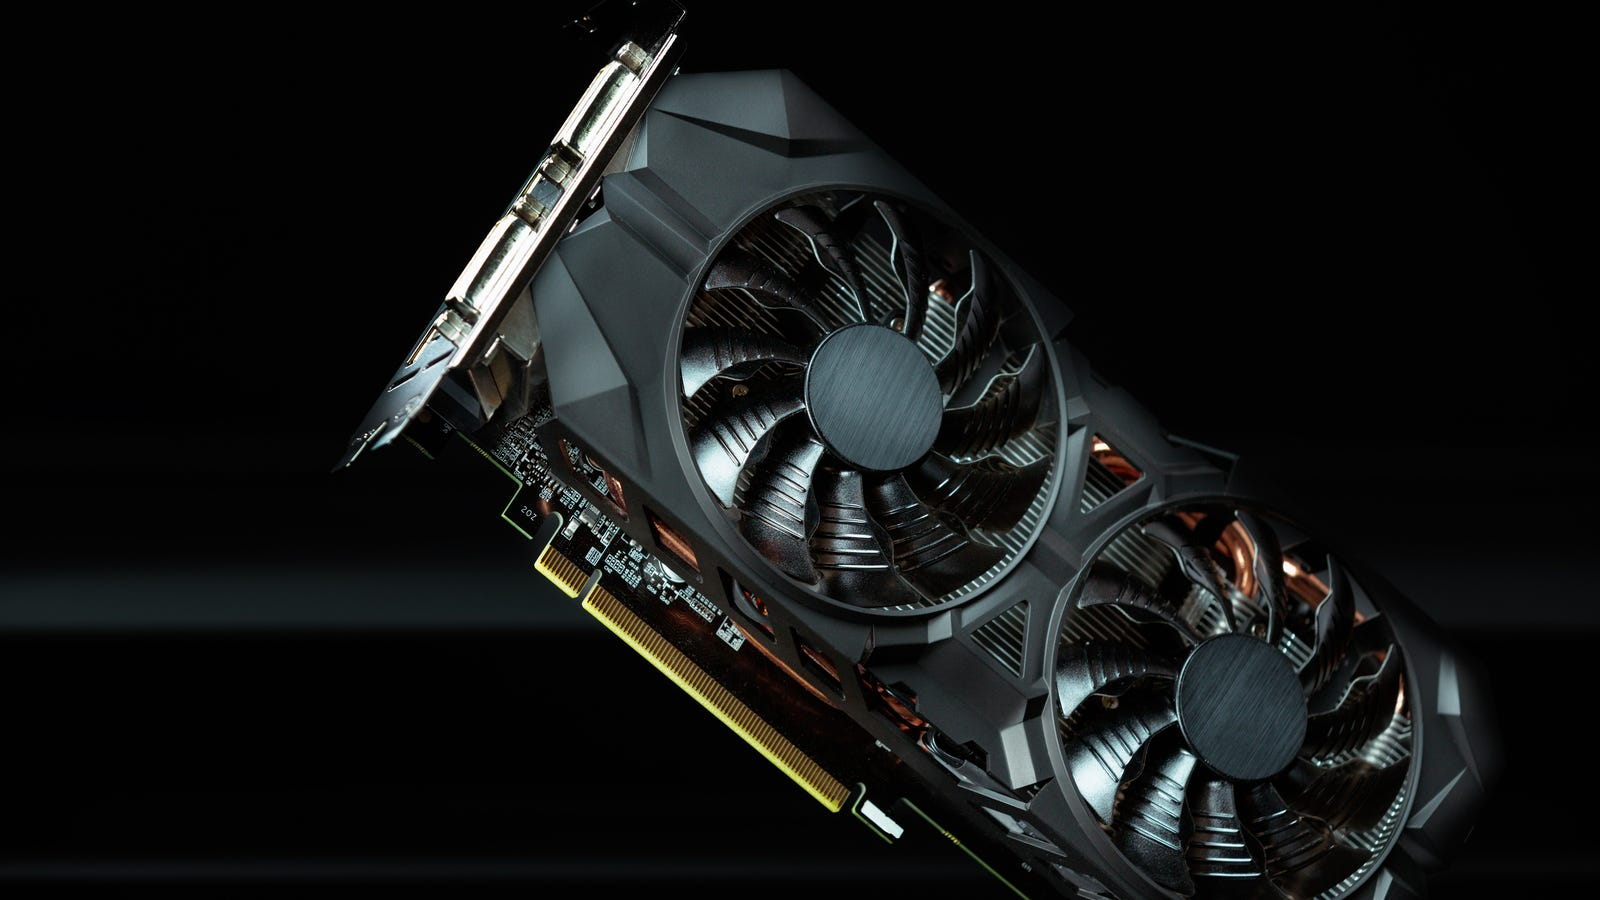 Graphics card set against a black and gray background